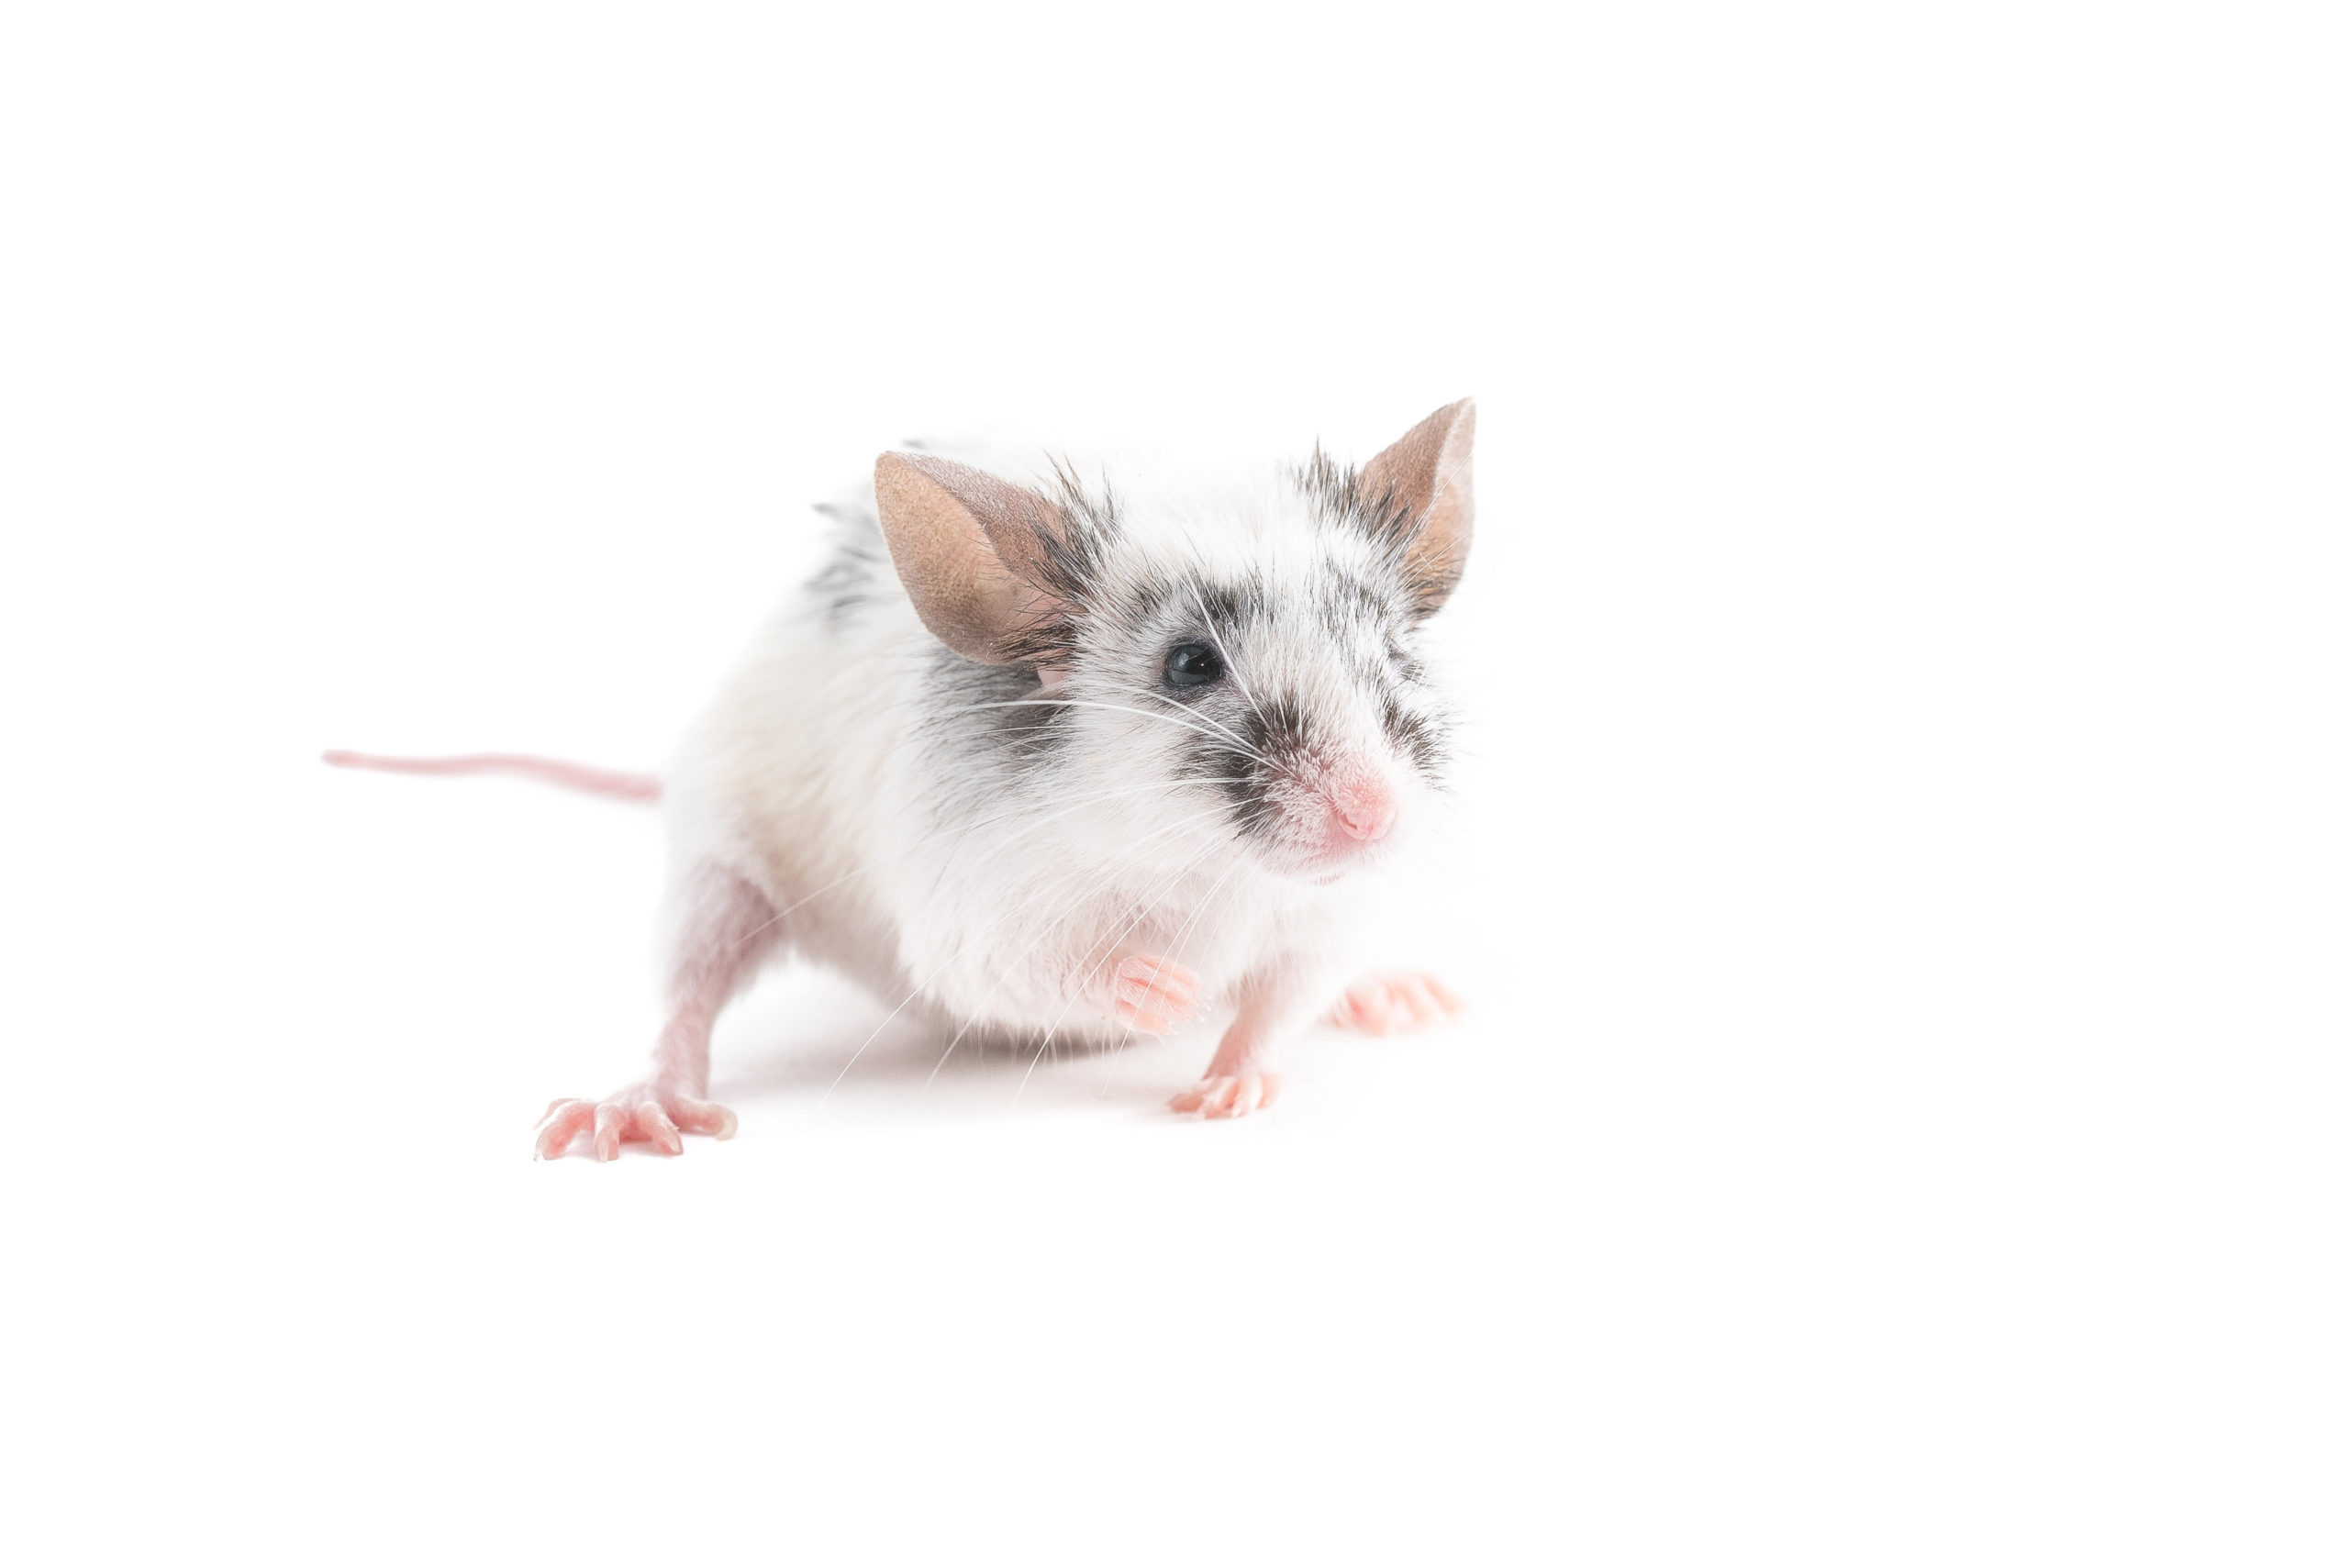 A small white and black mouse